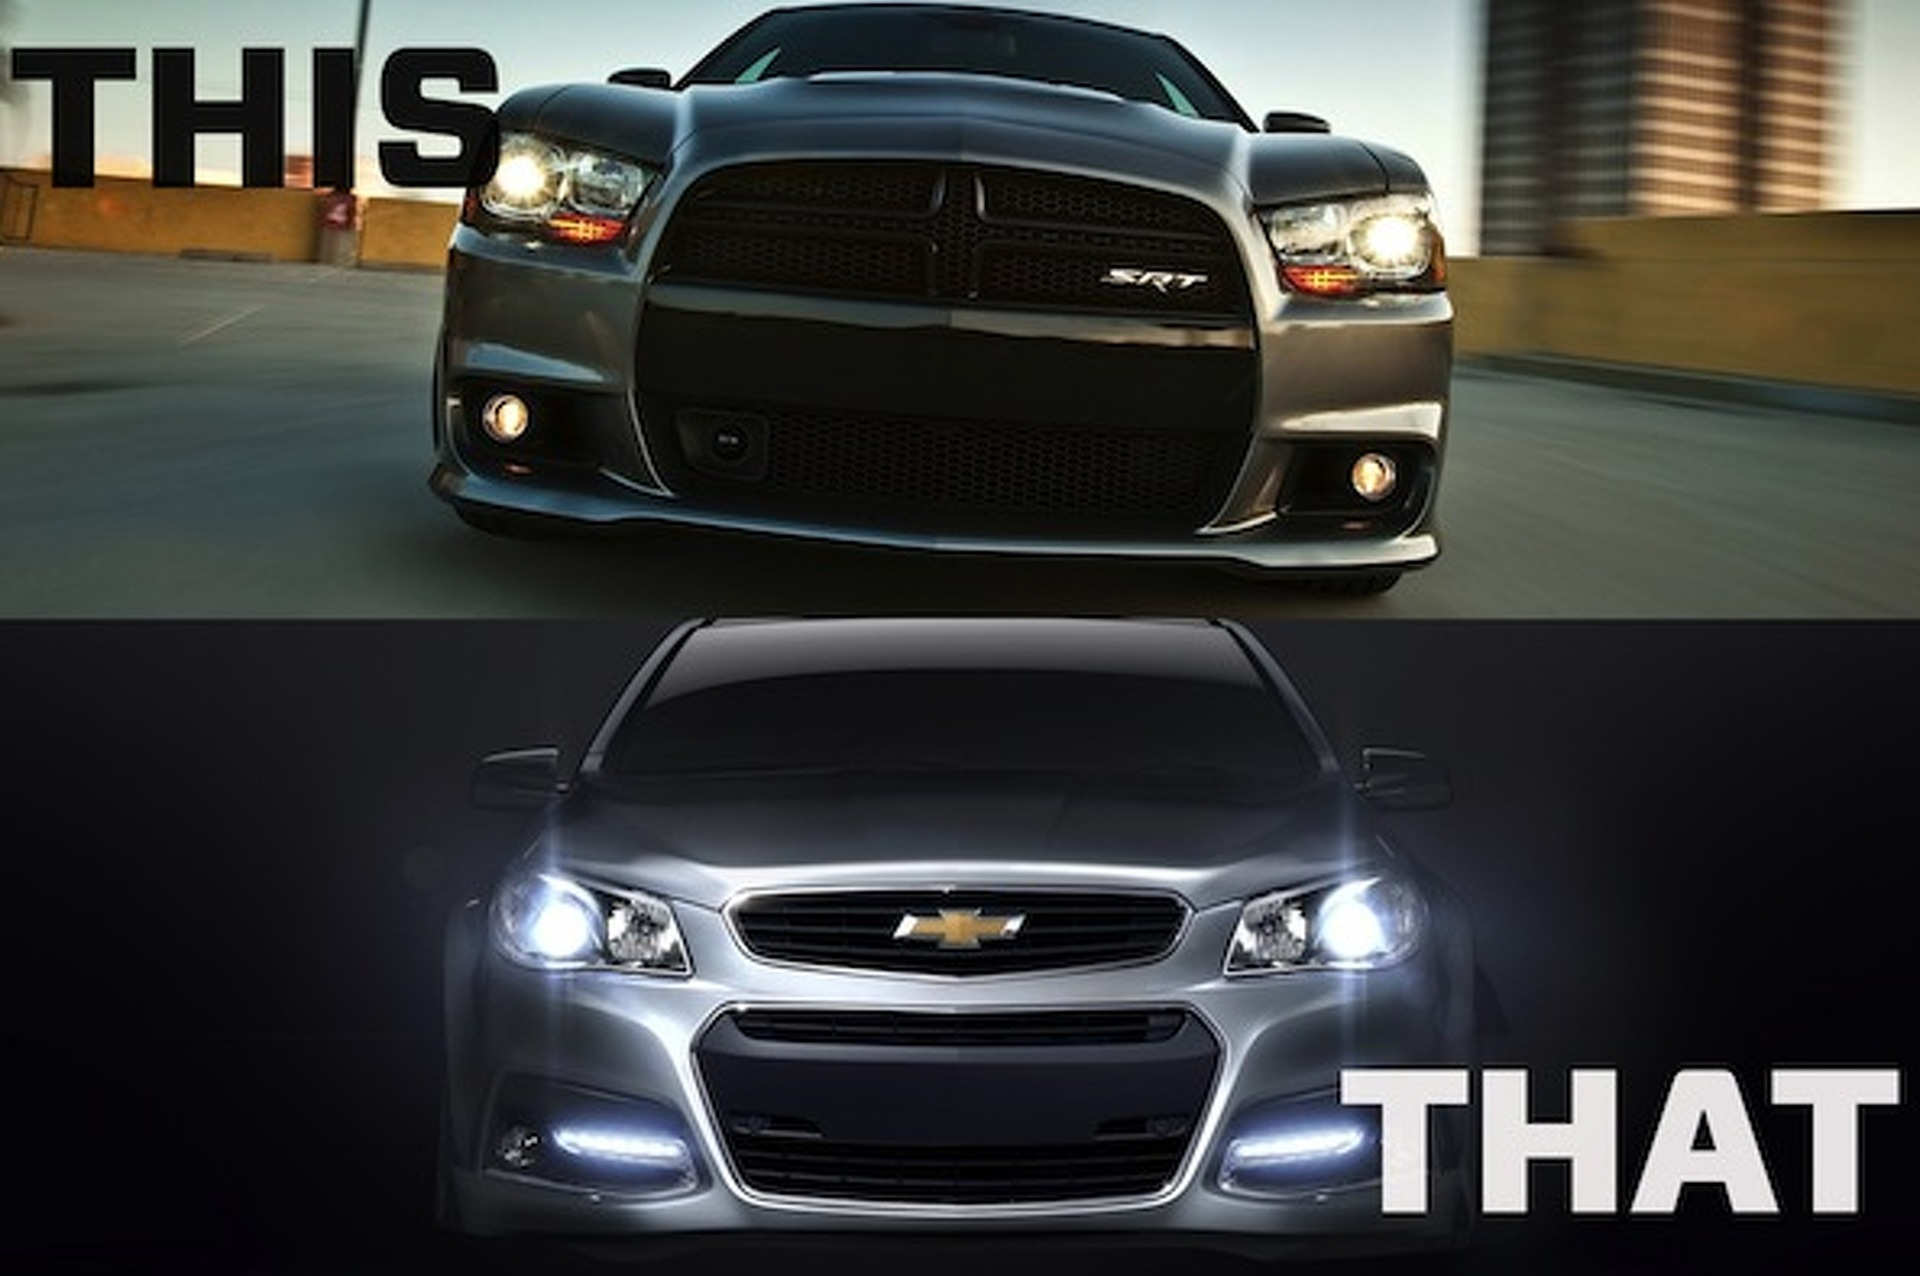 This or That: Dodge Charger SRT8 or Chevrolet SS